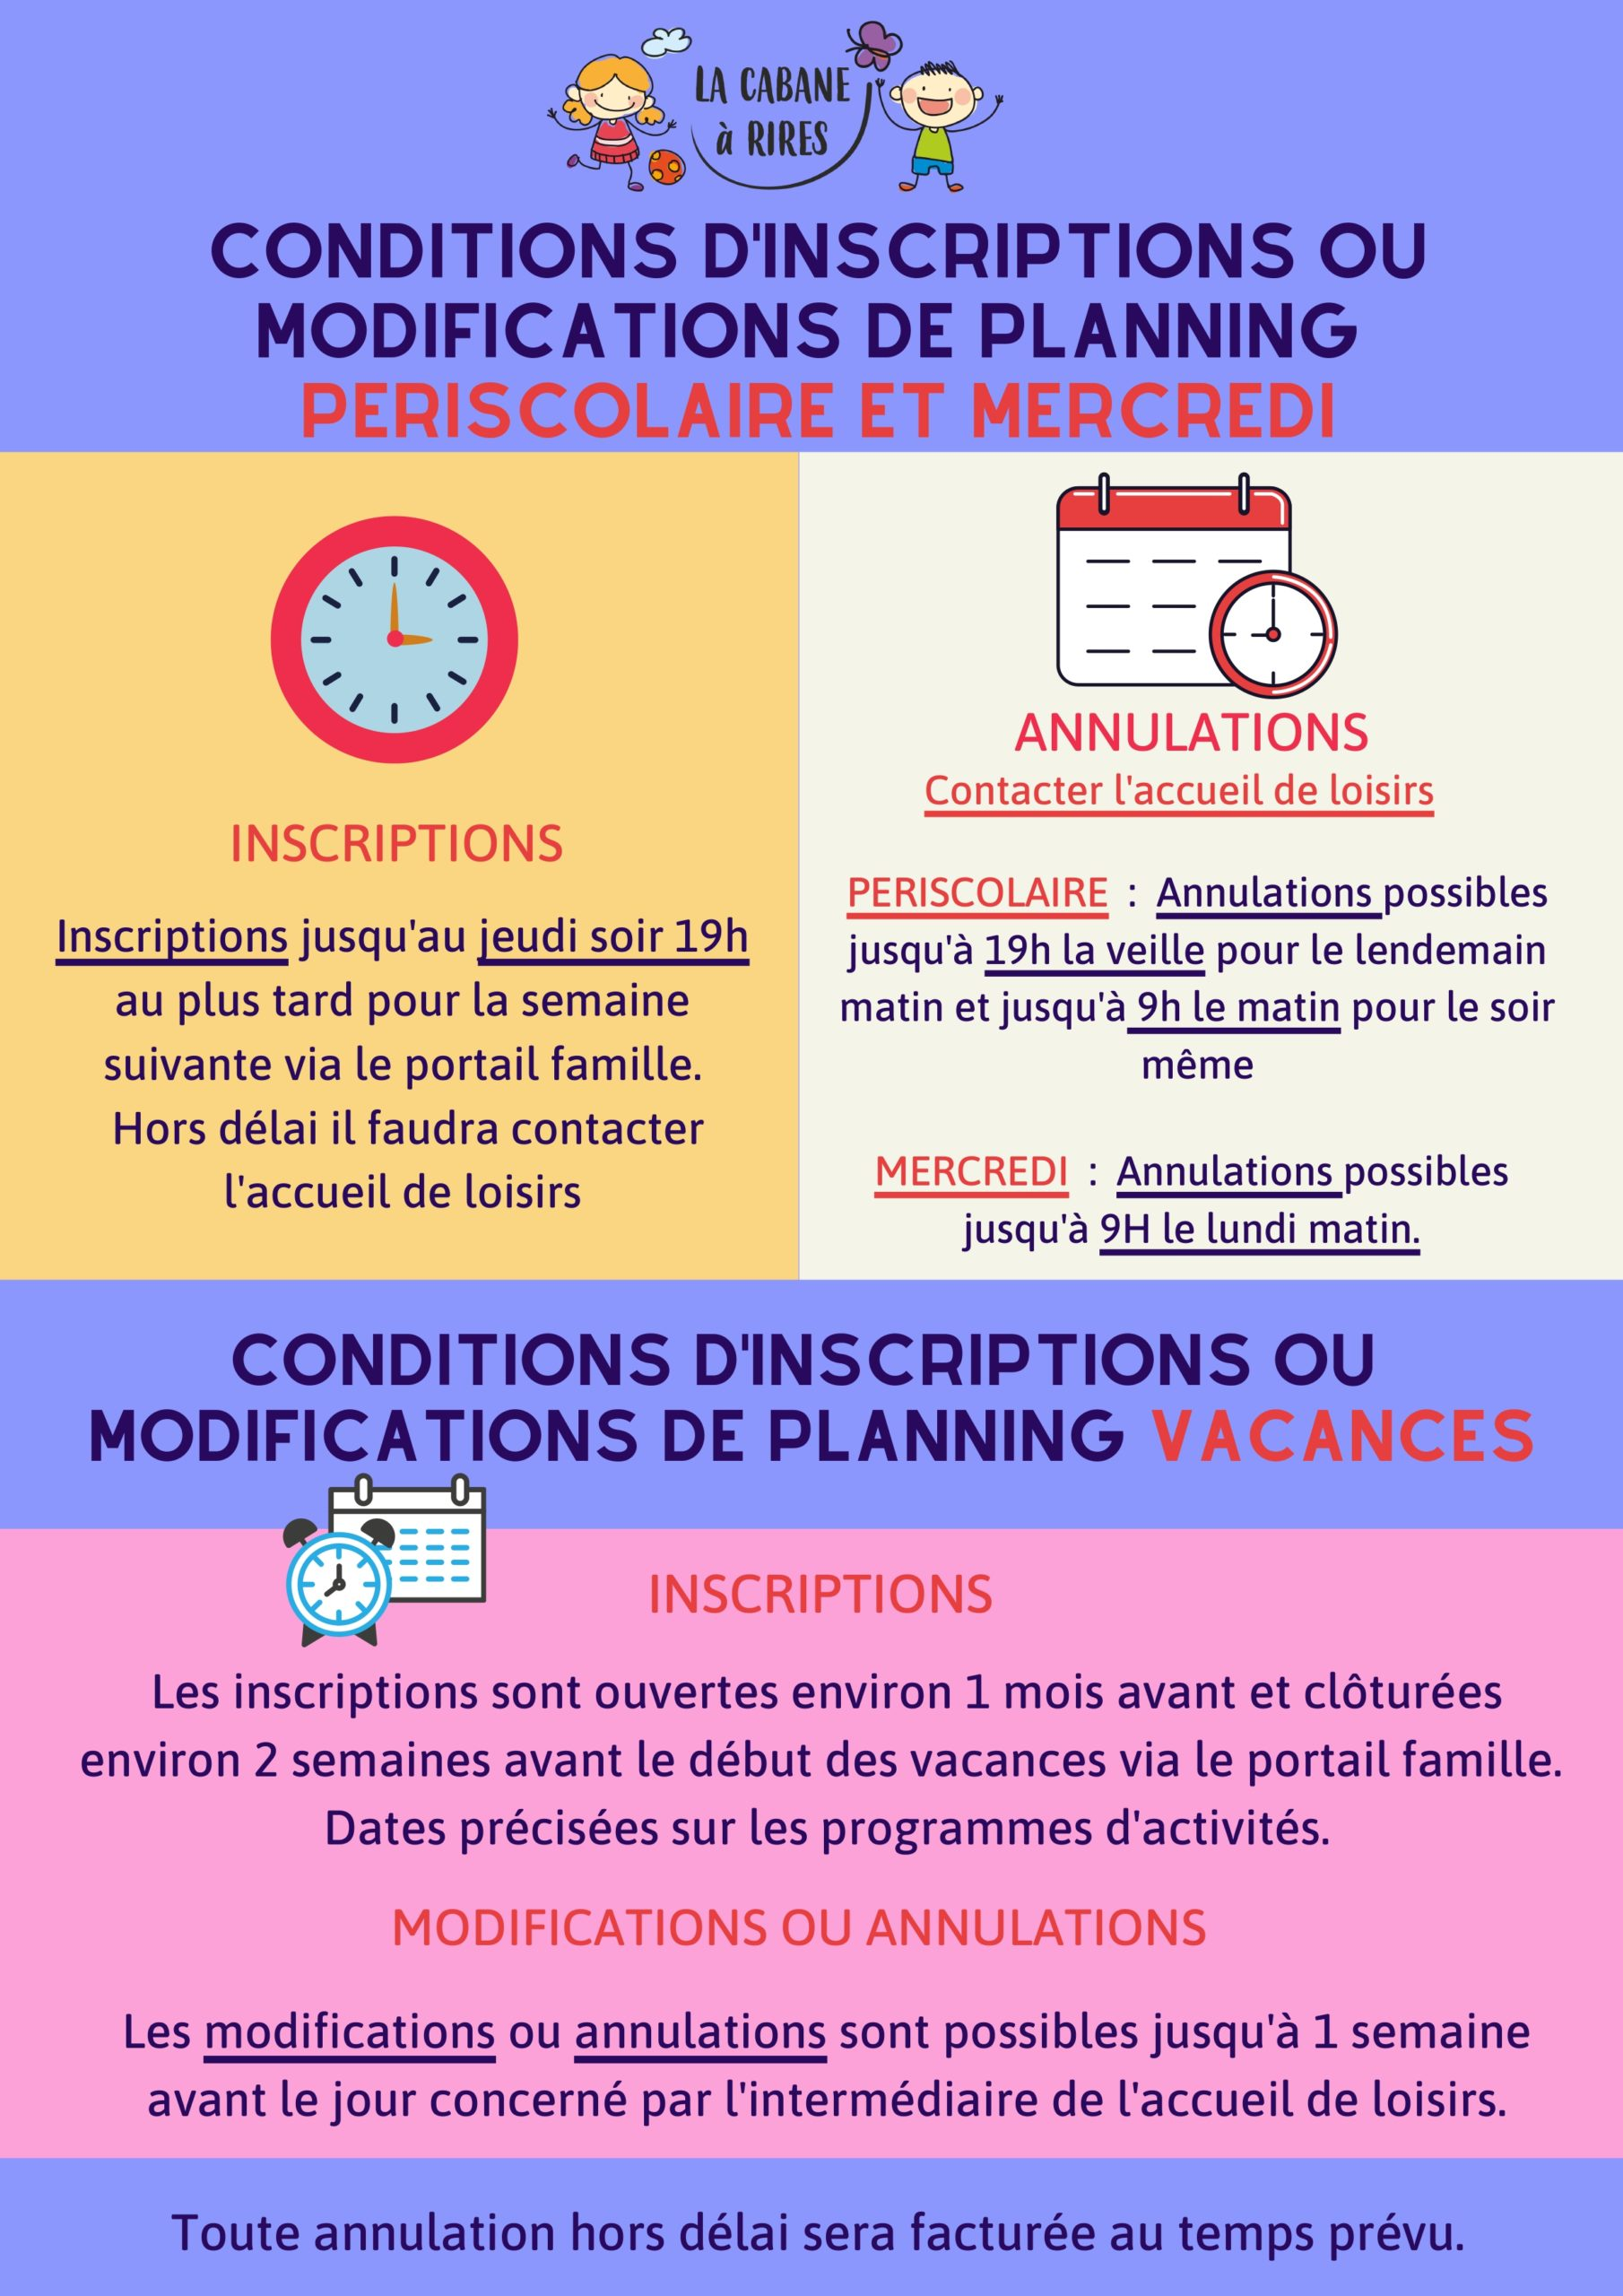 CONDITIONS D'ANULATION OU MODIFICATION PLANNING_page-0001 (1)